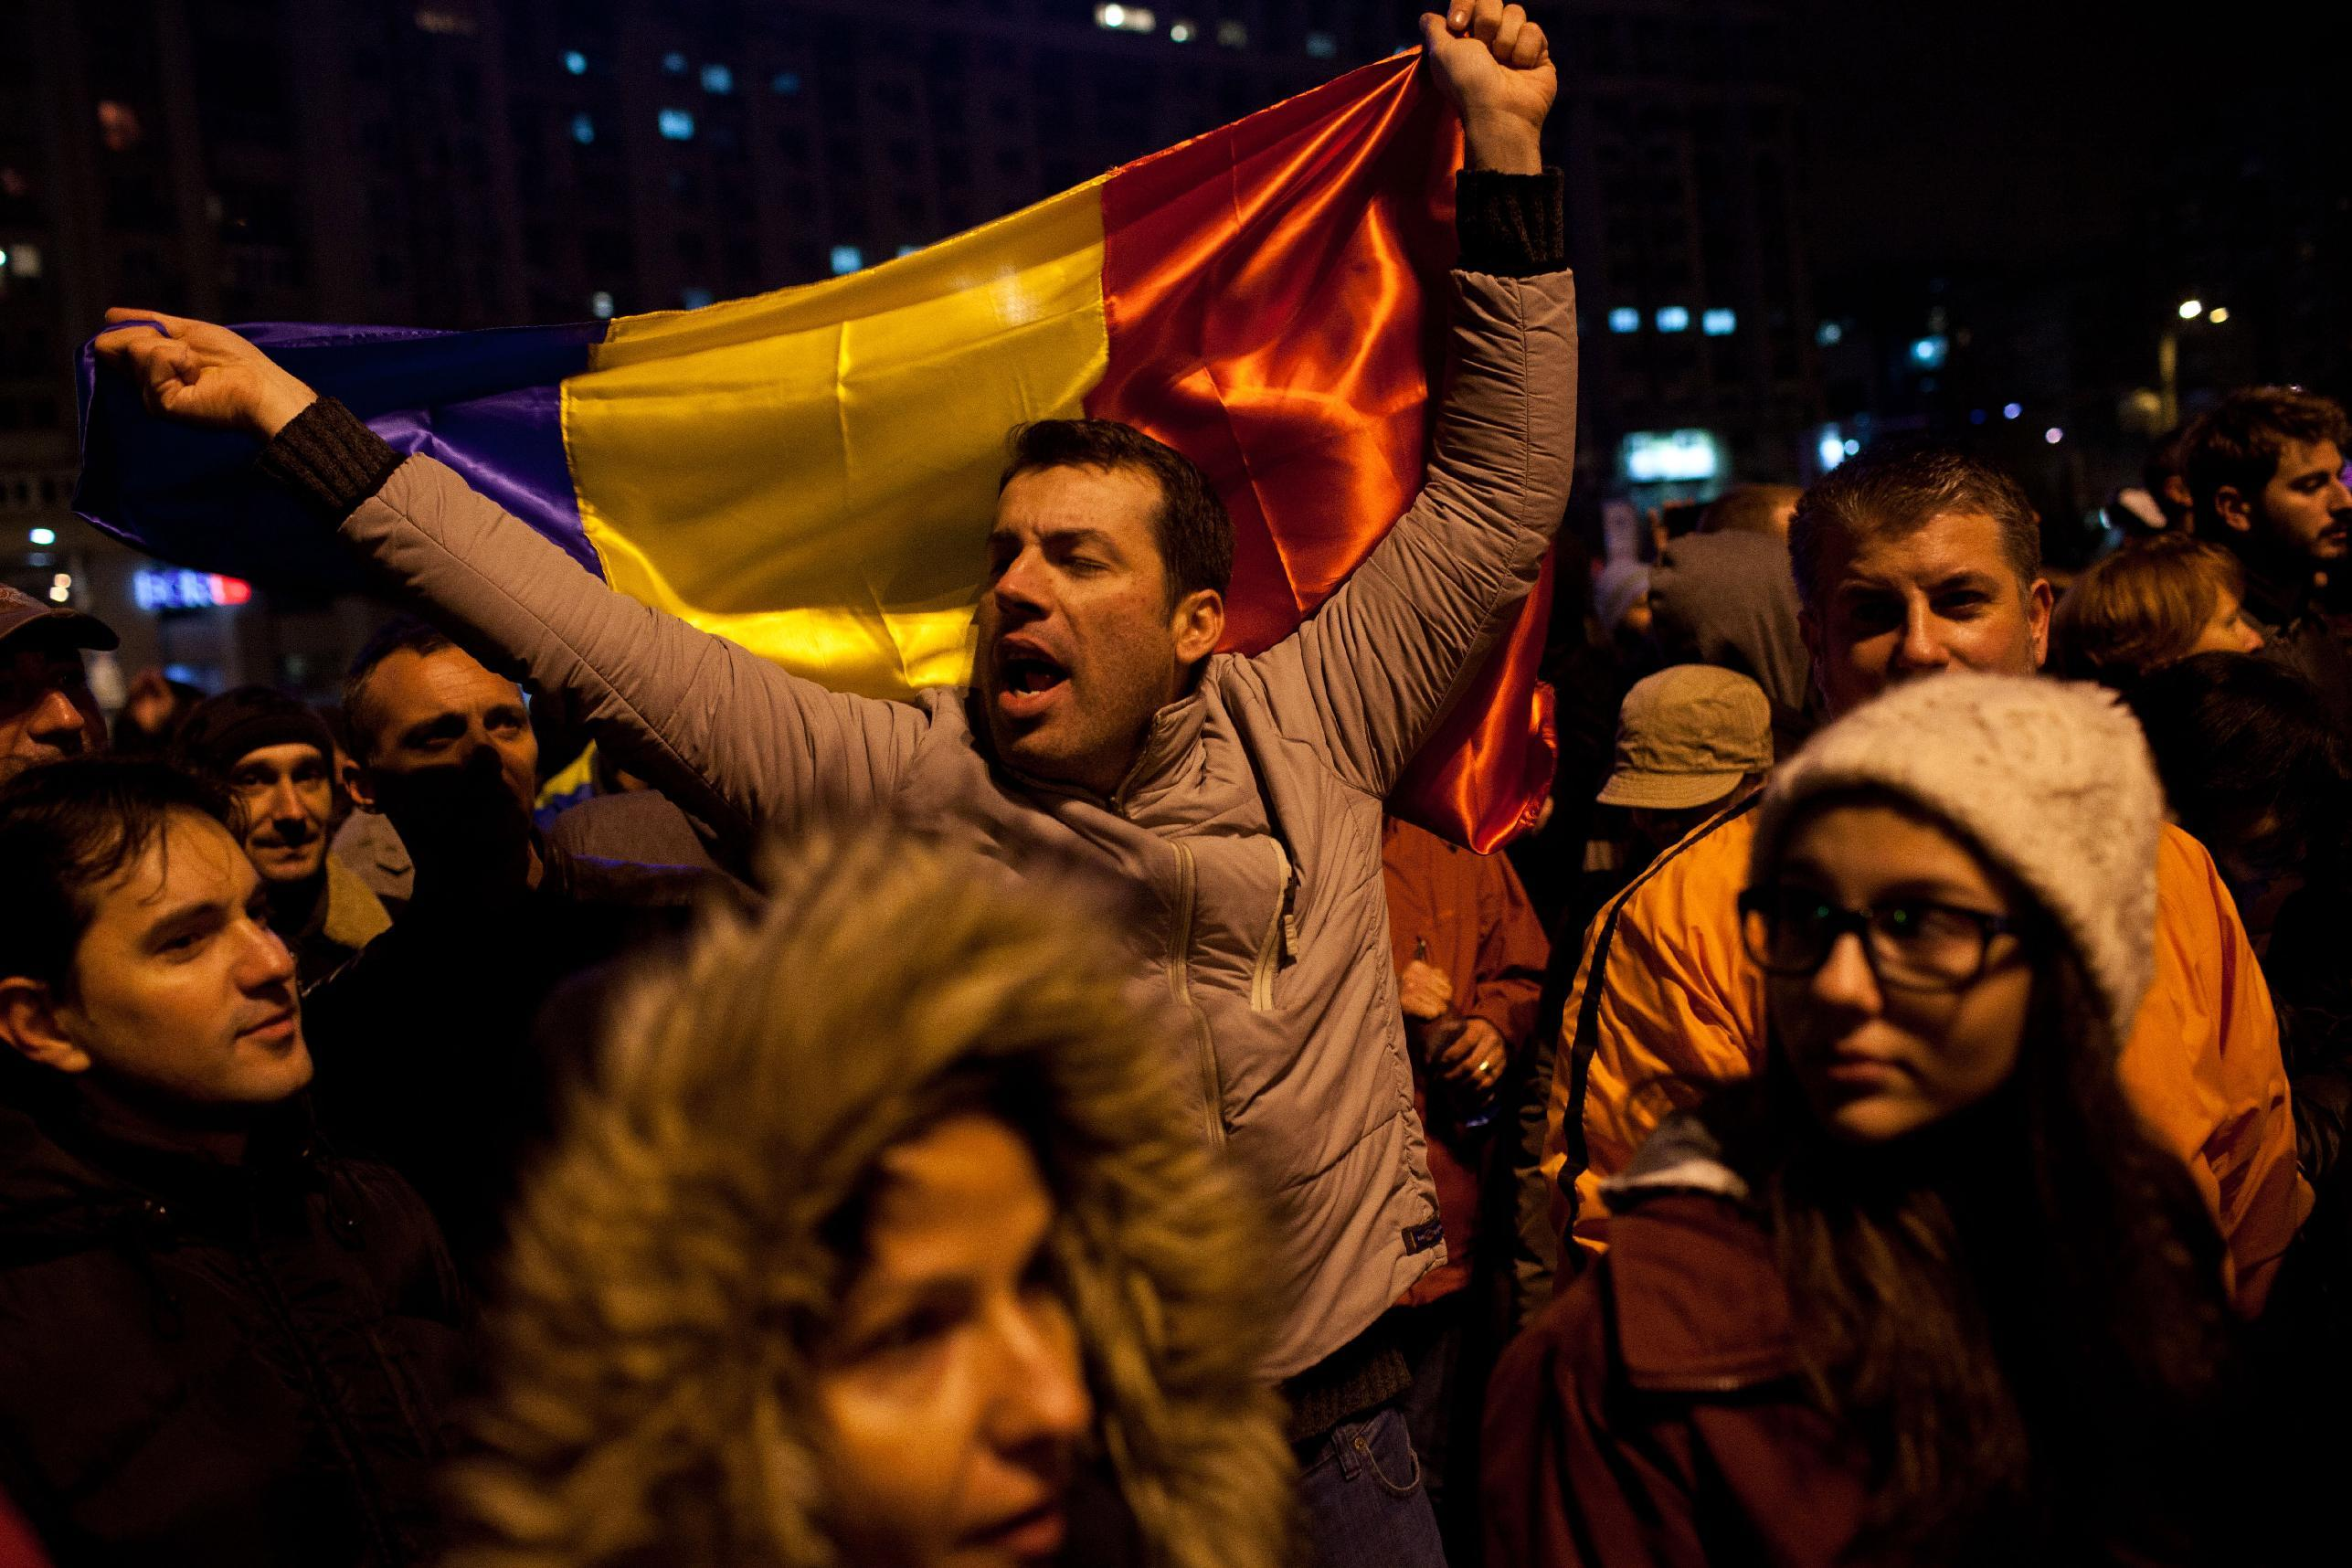 A man shouts a slogan during a protest against Romanian prime minister and presidential candidate Victor Ponta on November 14, 2014, in Bucharest